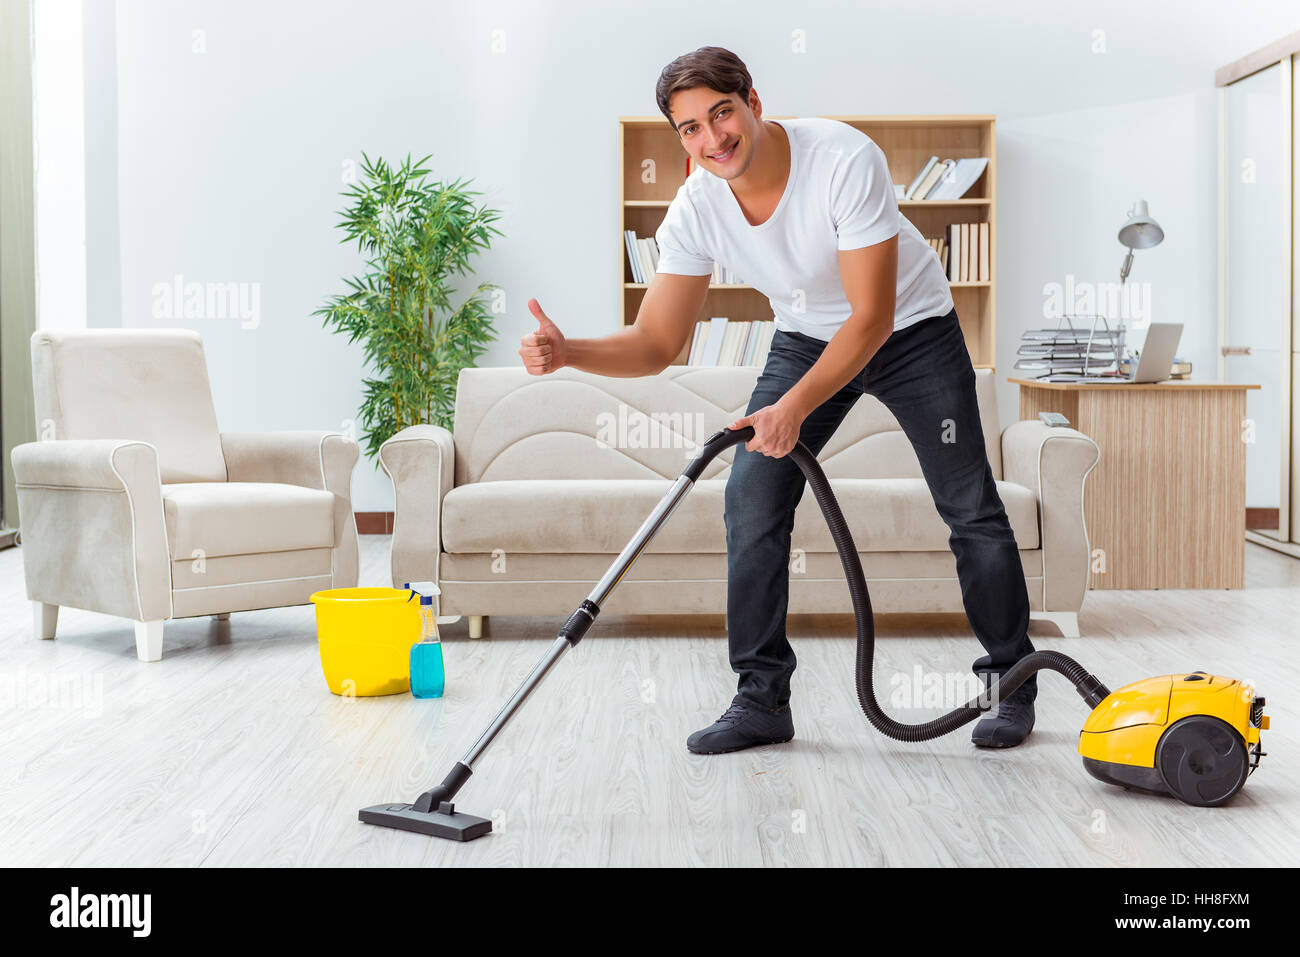 Cleaning The House man husband cleaning the house helping wife stock photo, royalty